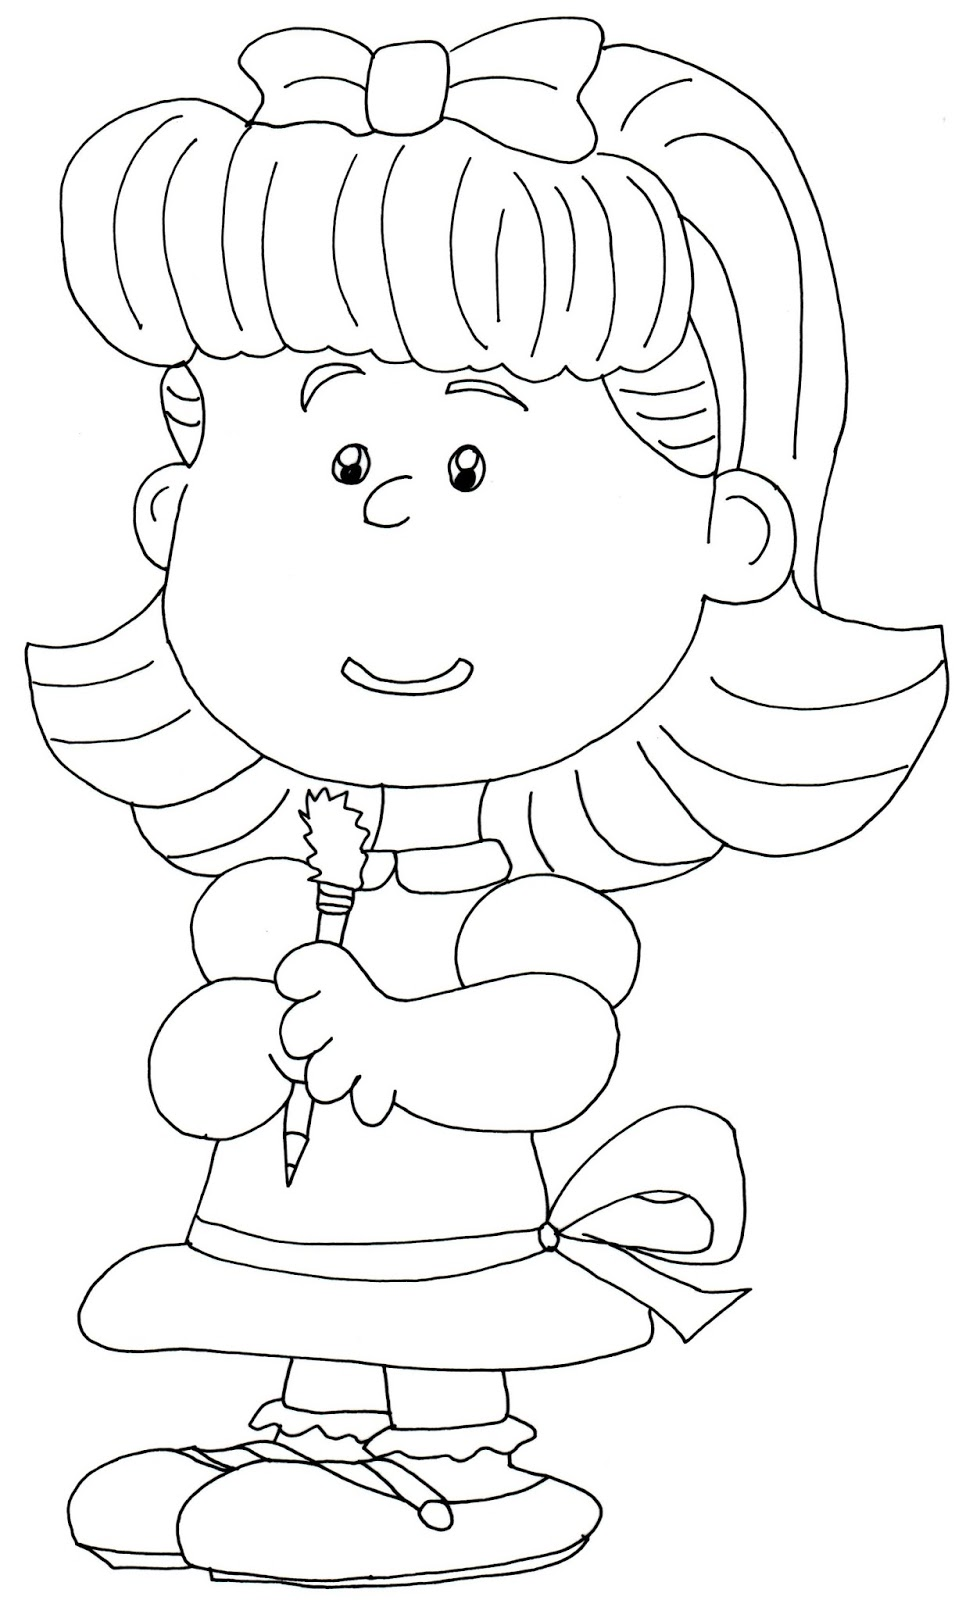 973x1600 Crafty Design Peanuts Coloring Pages Free Charlie Brown Snoopy